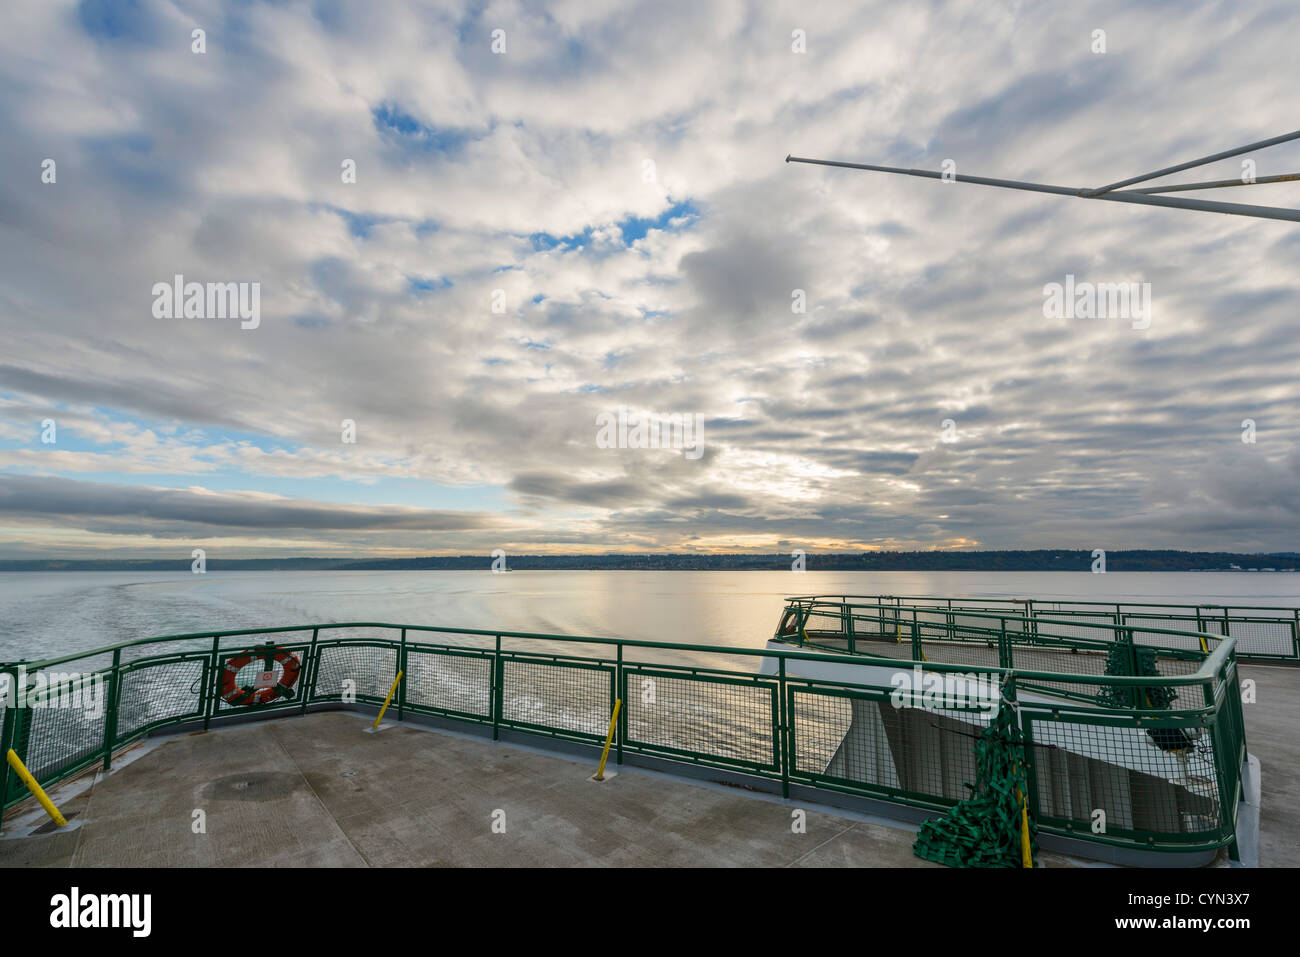 View from the stern of Washington State Ferry between Edmonds and Kingston looking back towards Edmonds, Washington, - Stock Image